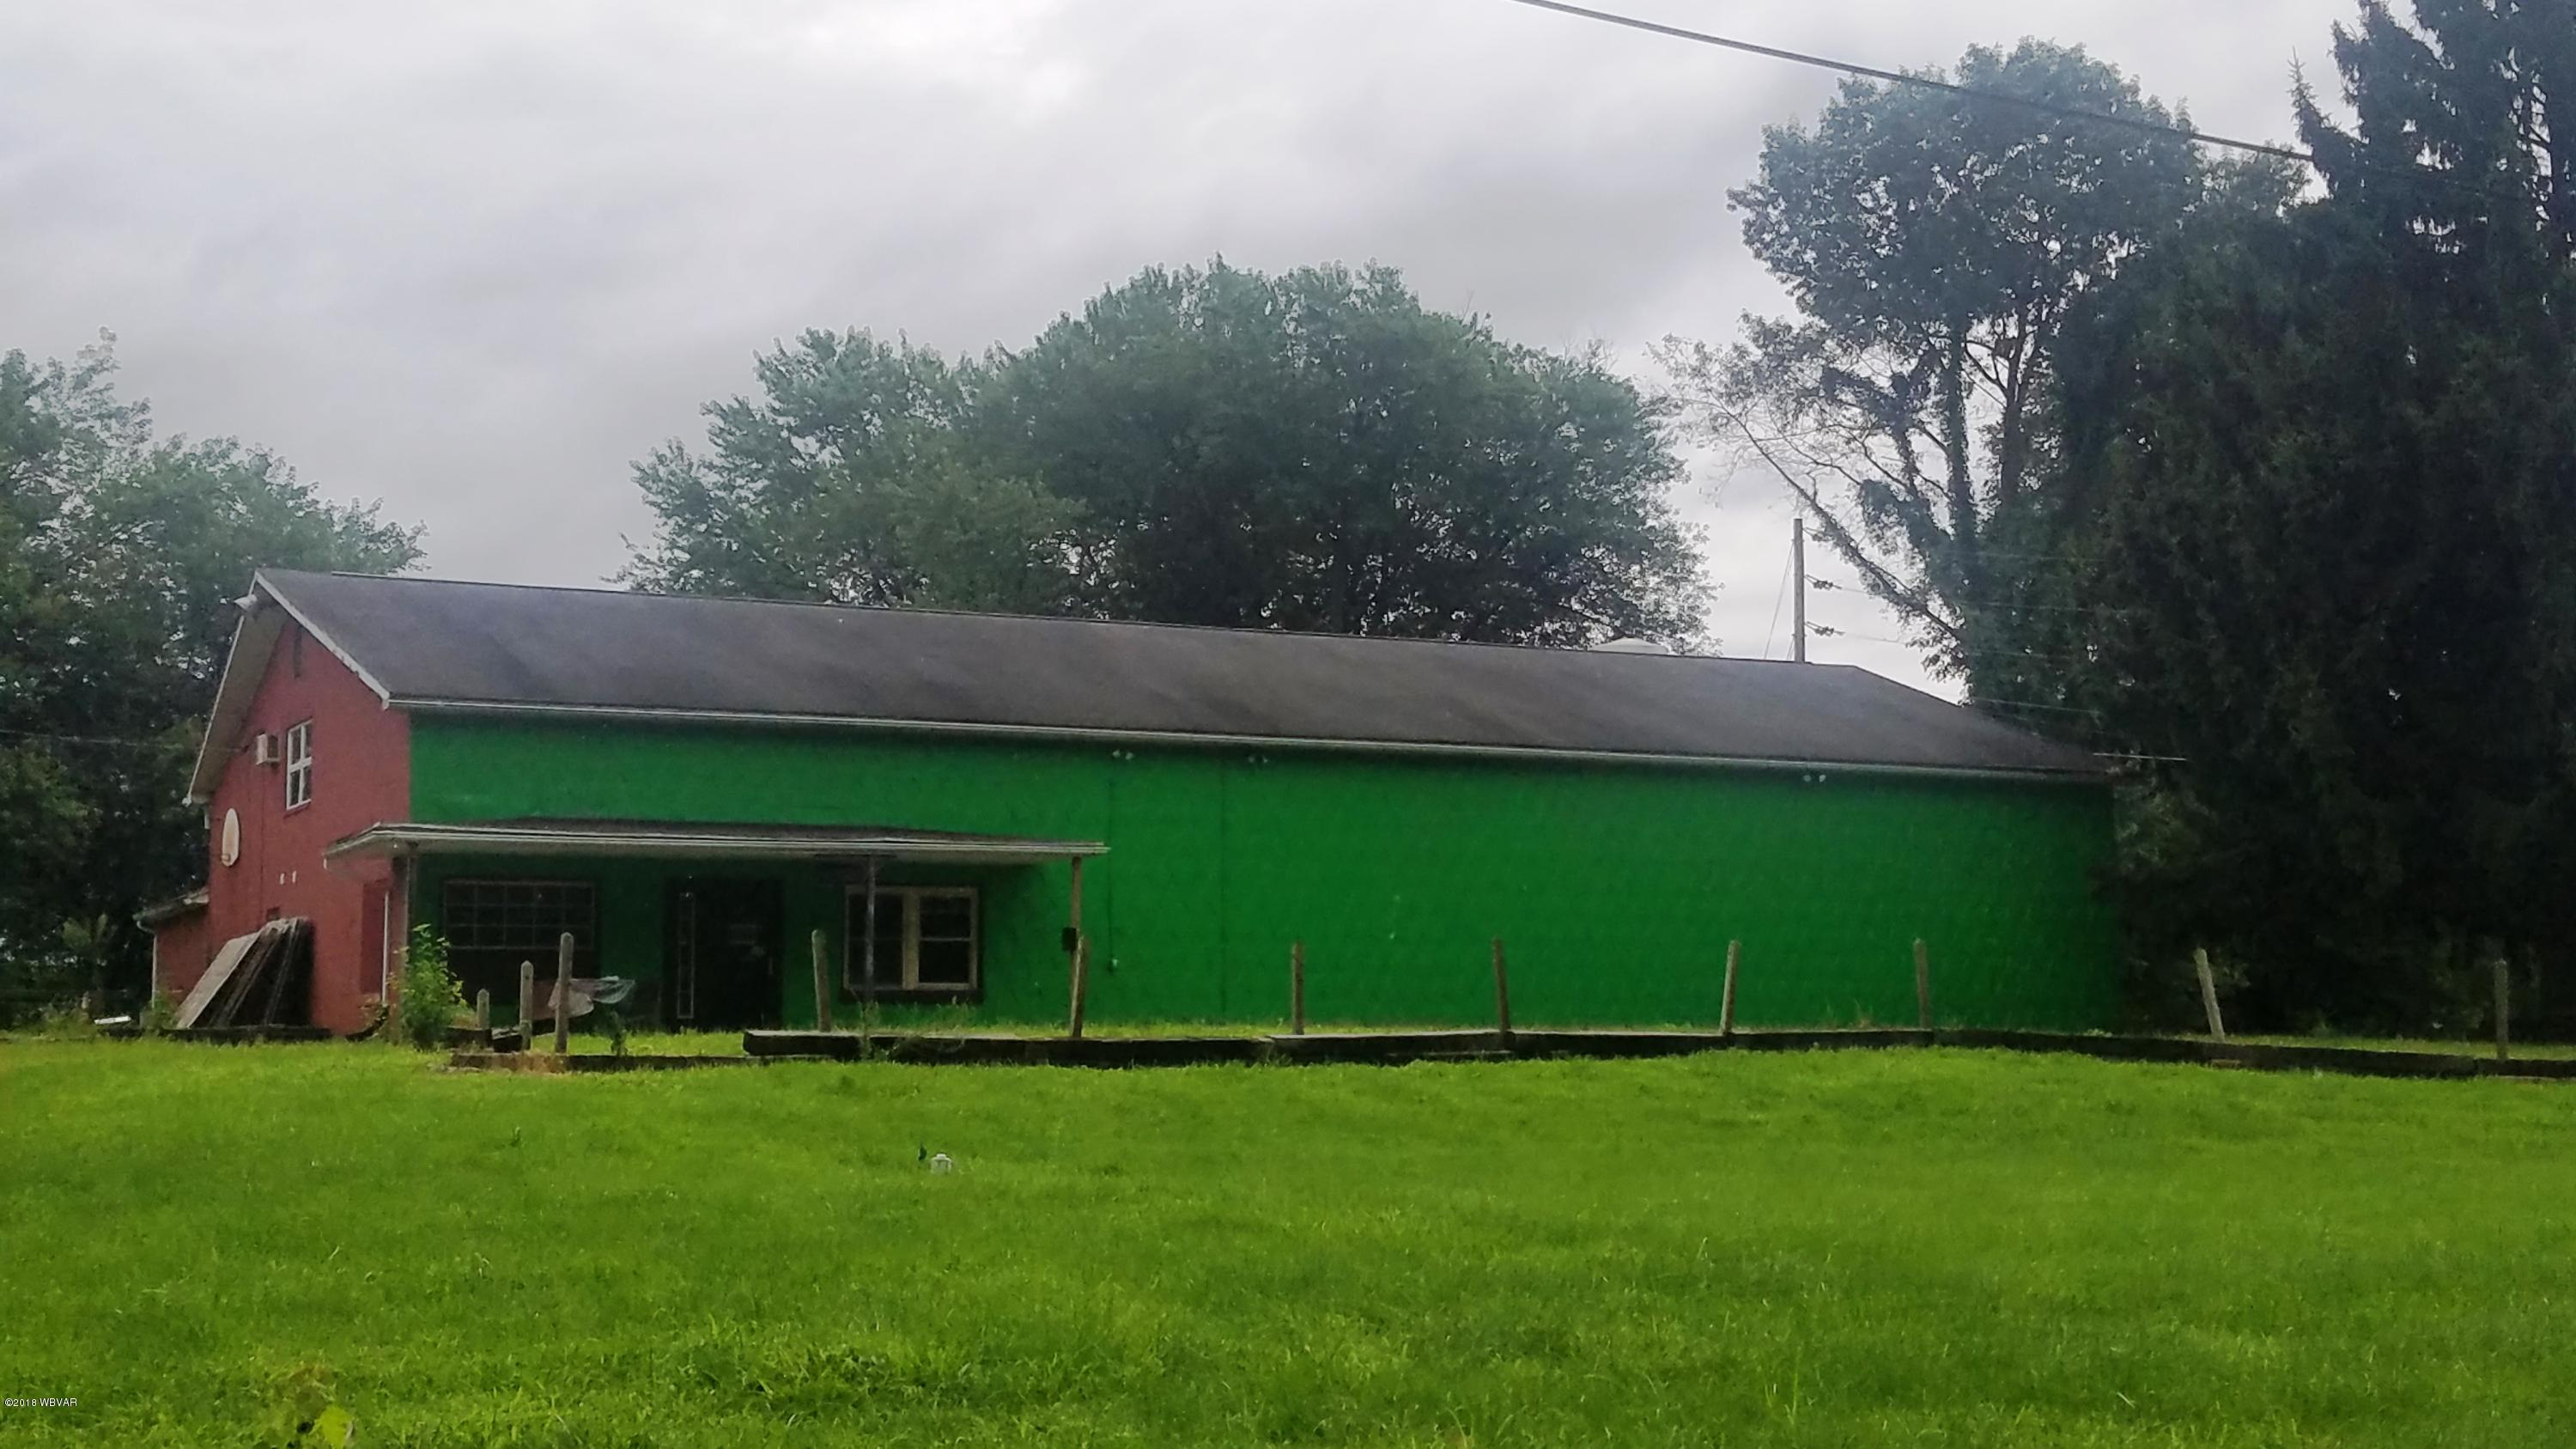 3074 STATE ROUTE 405 ROAD,Milton,PA 17847,2 BathroomsBathrooms,Commercial sales,STATE ROUTE 405,WB-85047